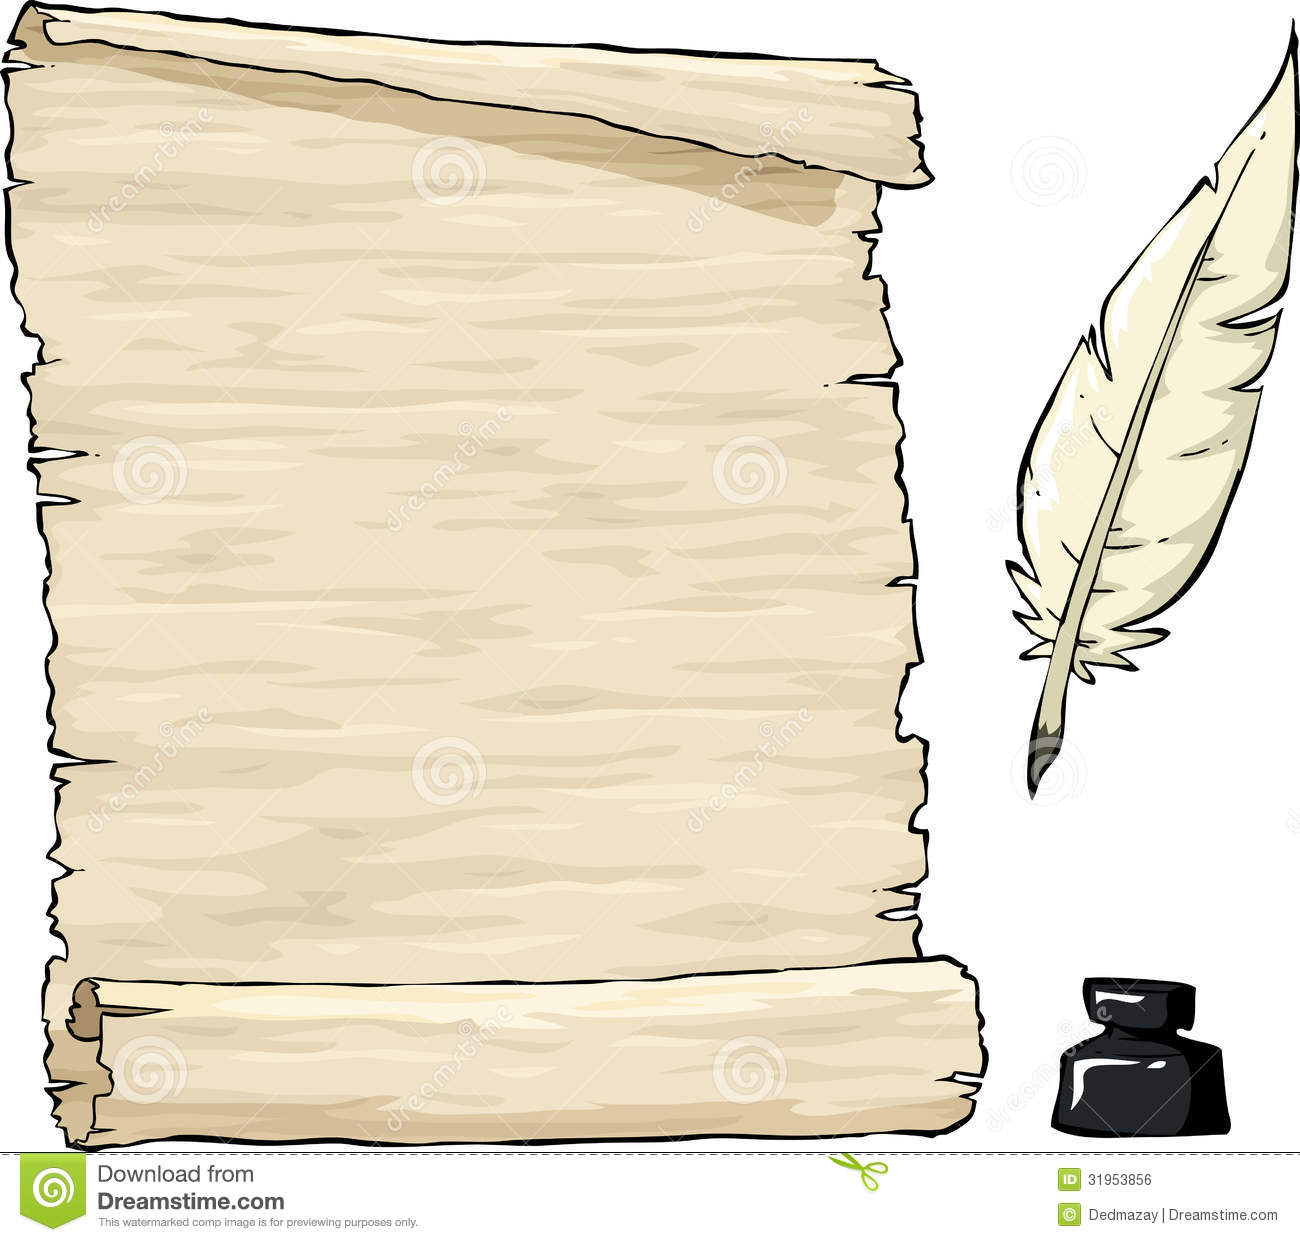 quill and parchment clipart - photo #23